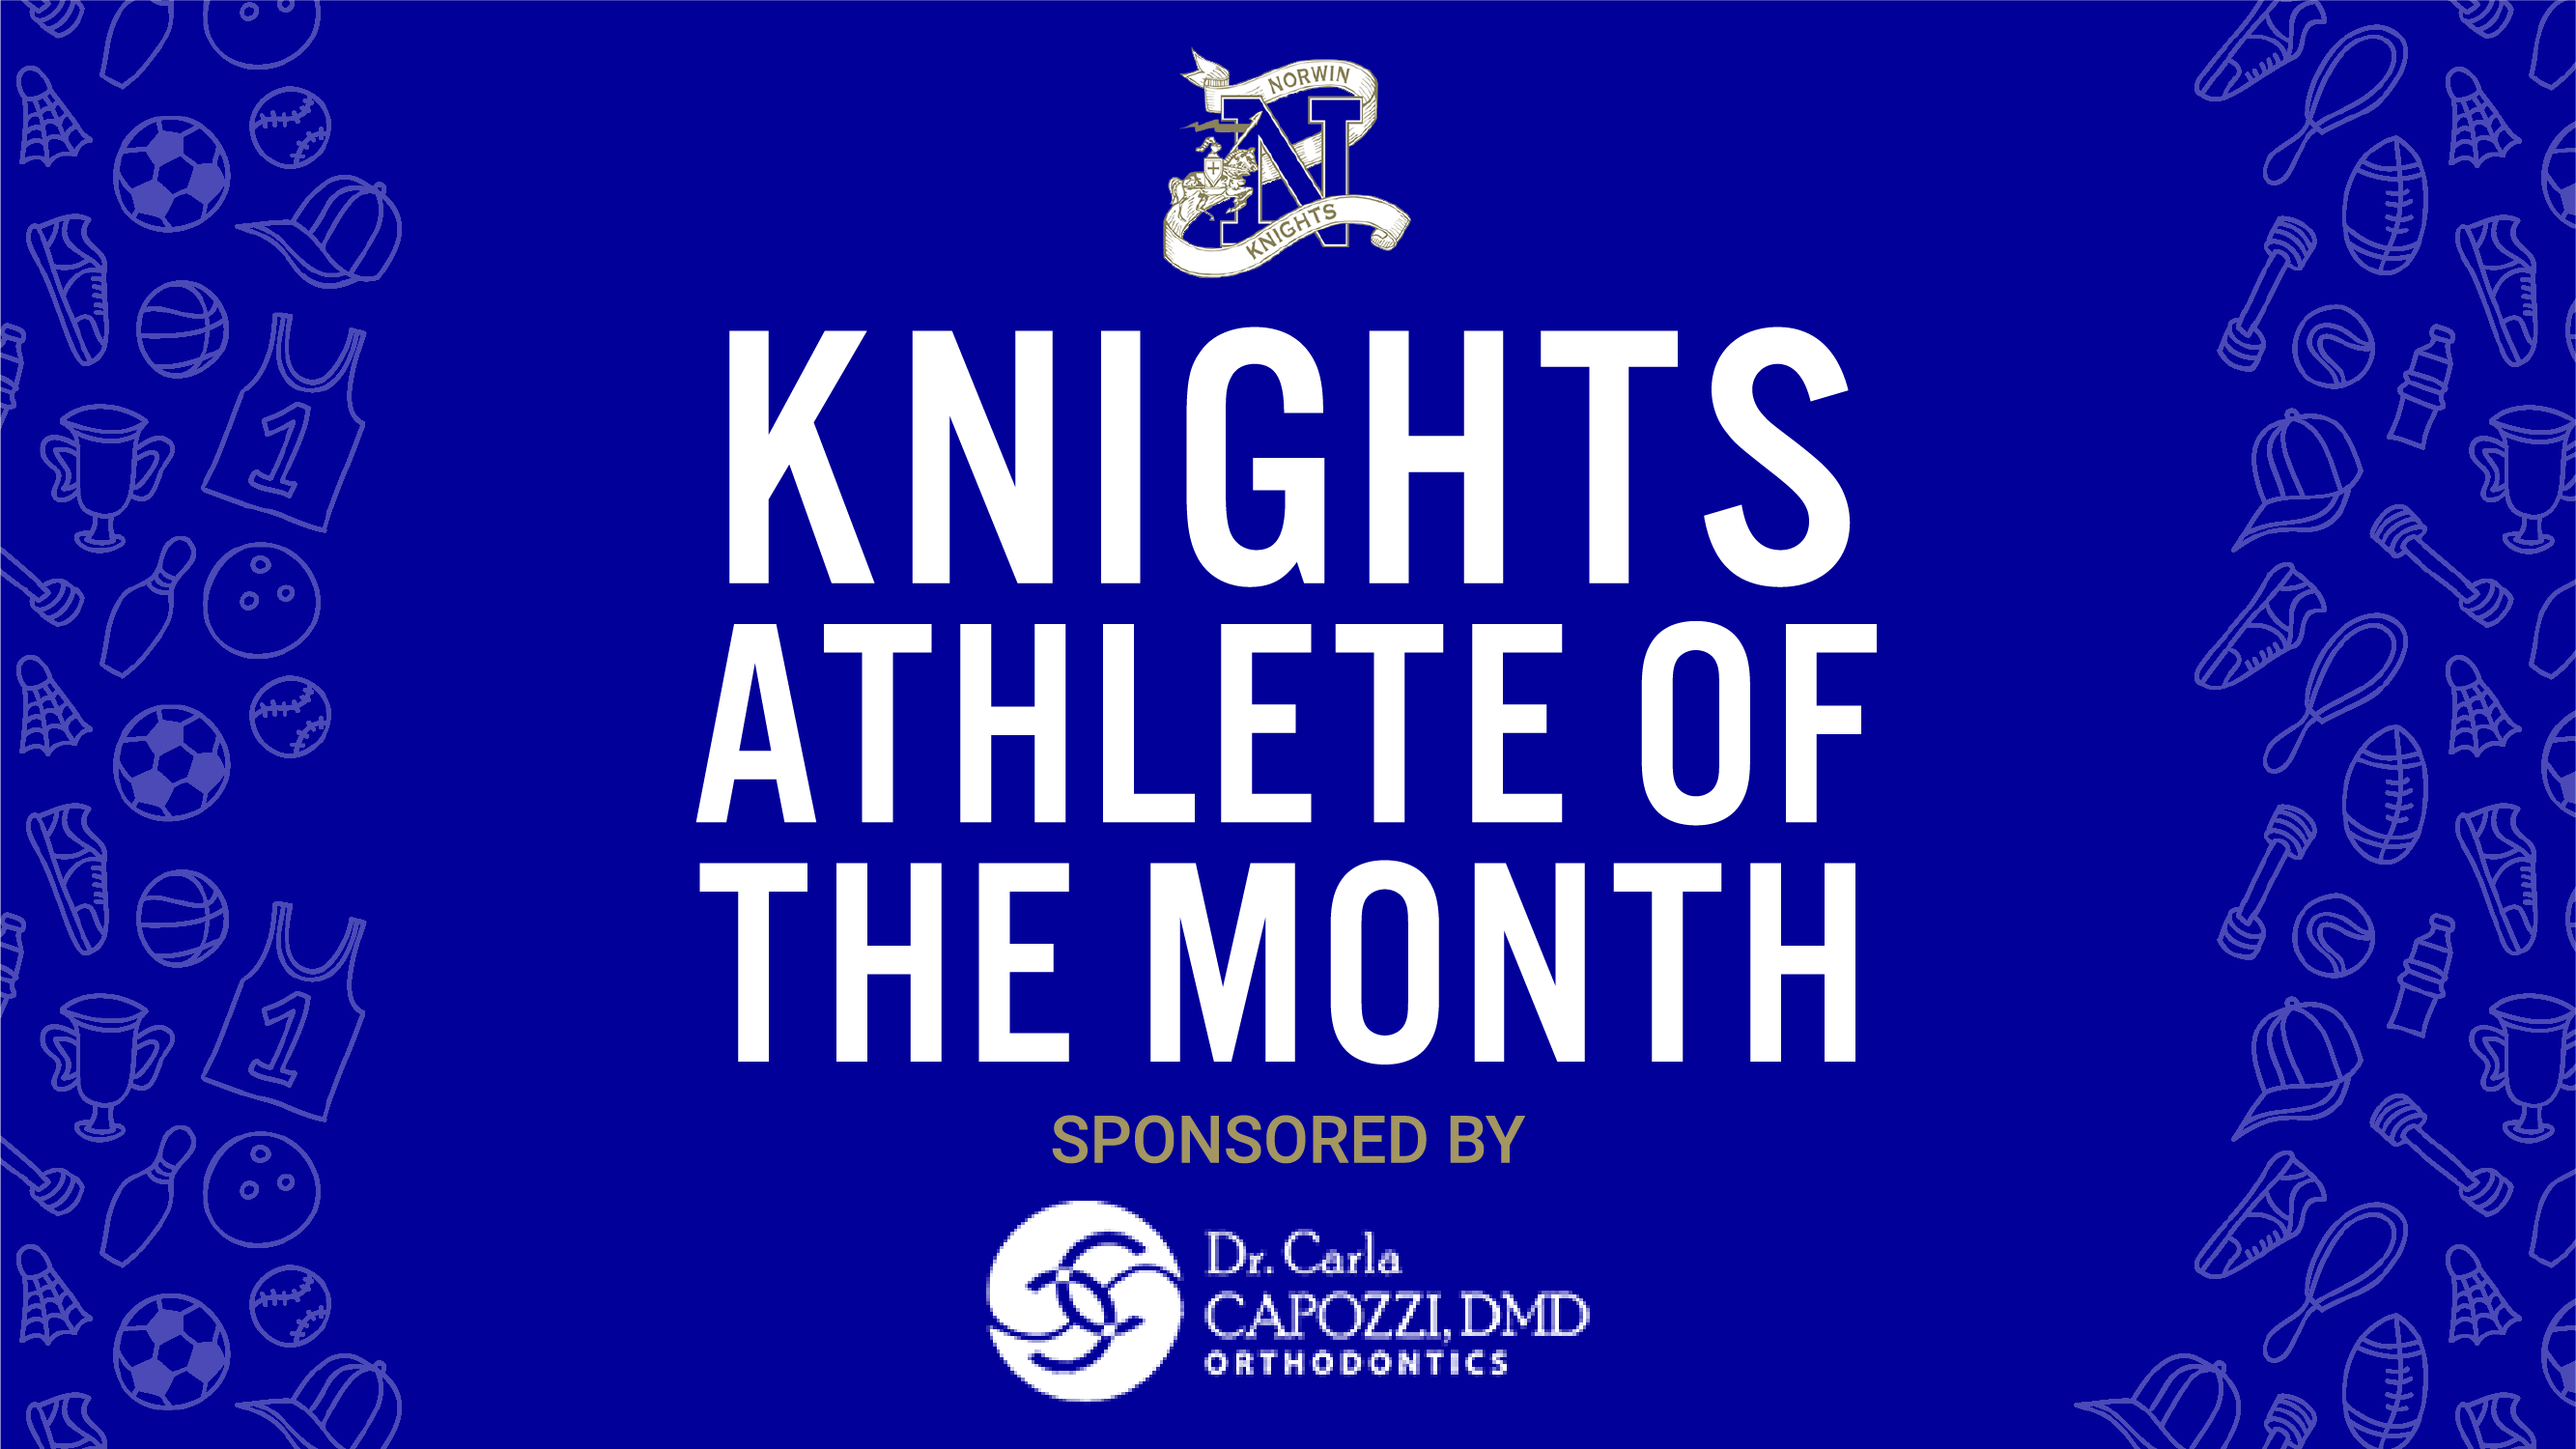 Congratulations to Norwin's September Athlete of the month! Sponsored by Dr.Carla Capozzi, DMD, Orthodontics.